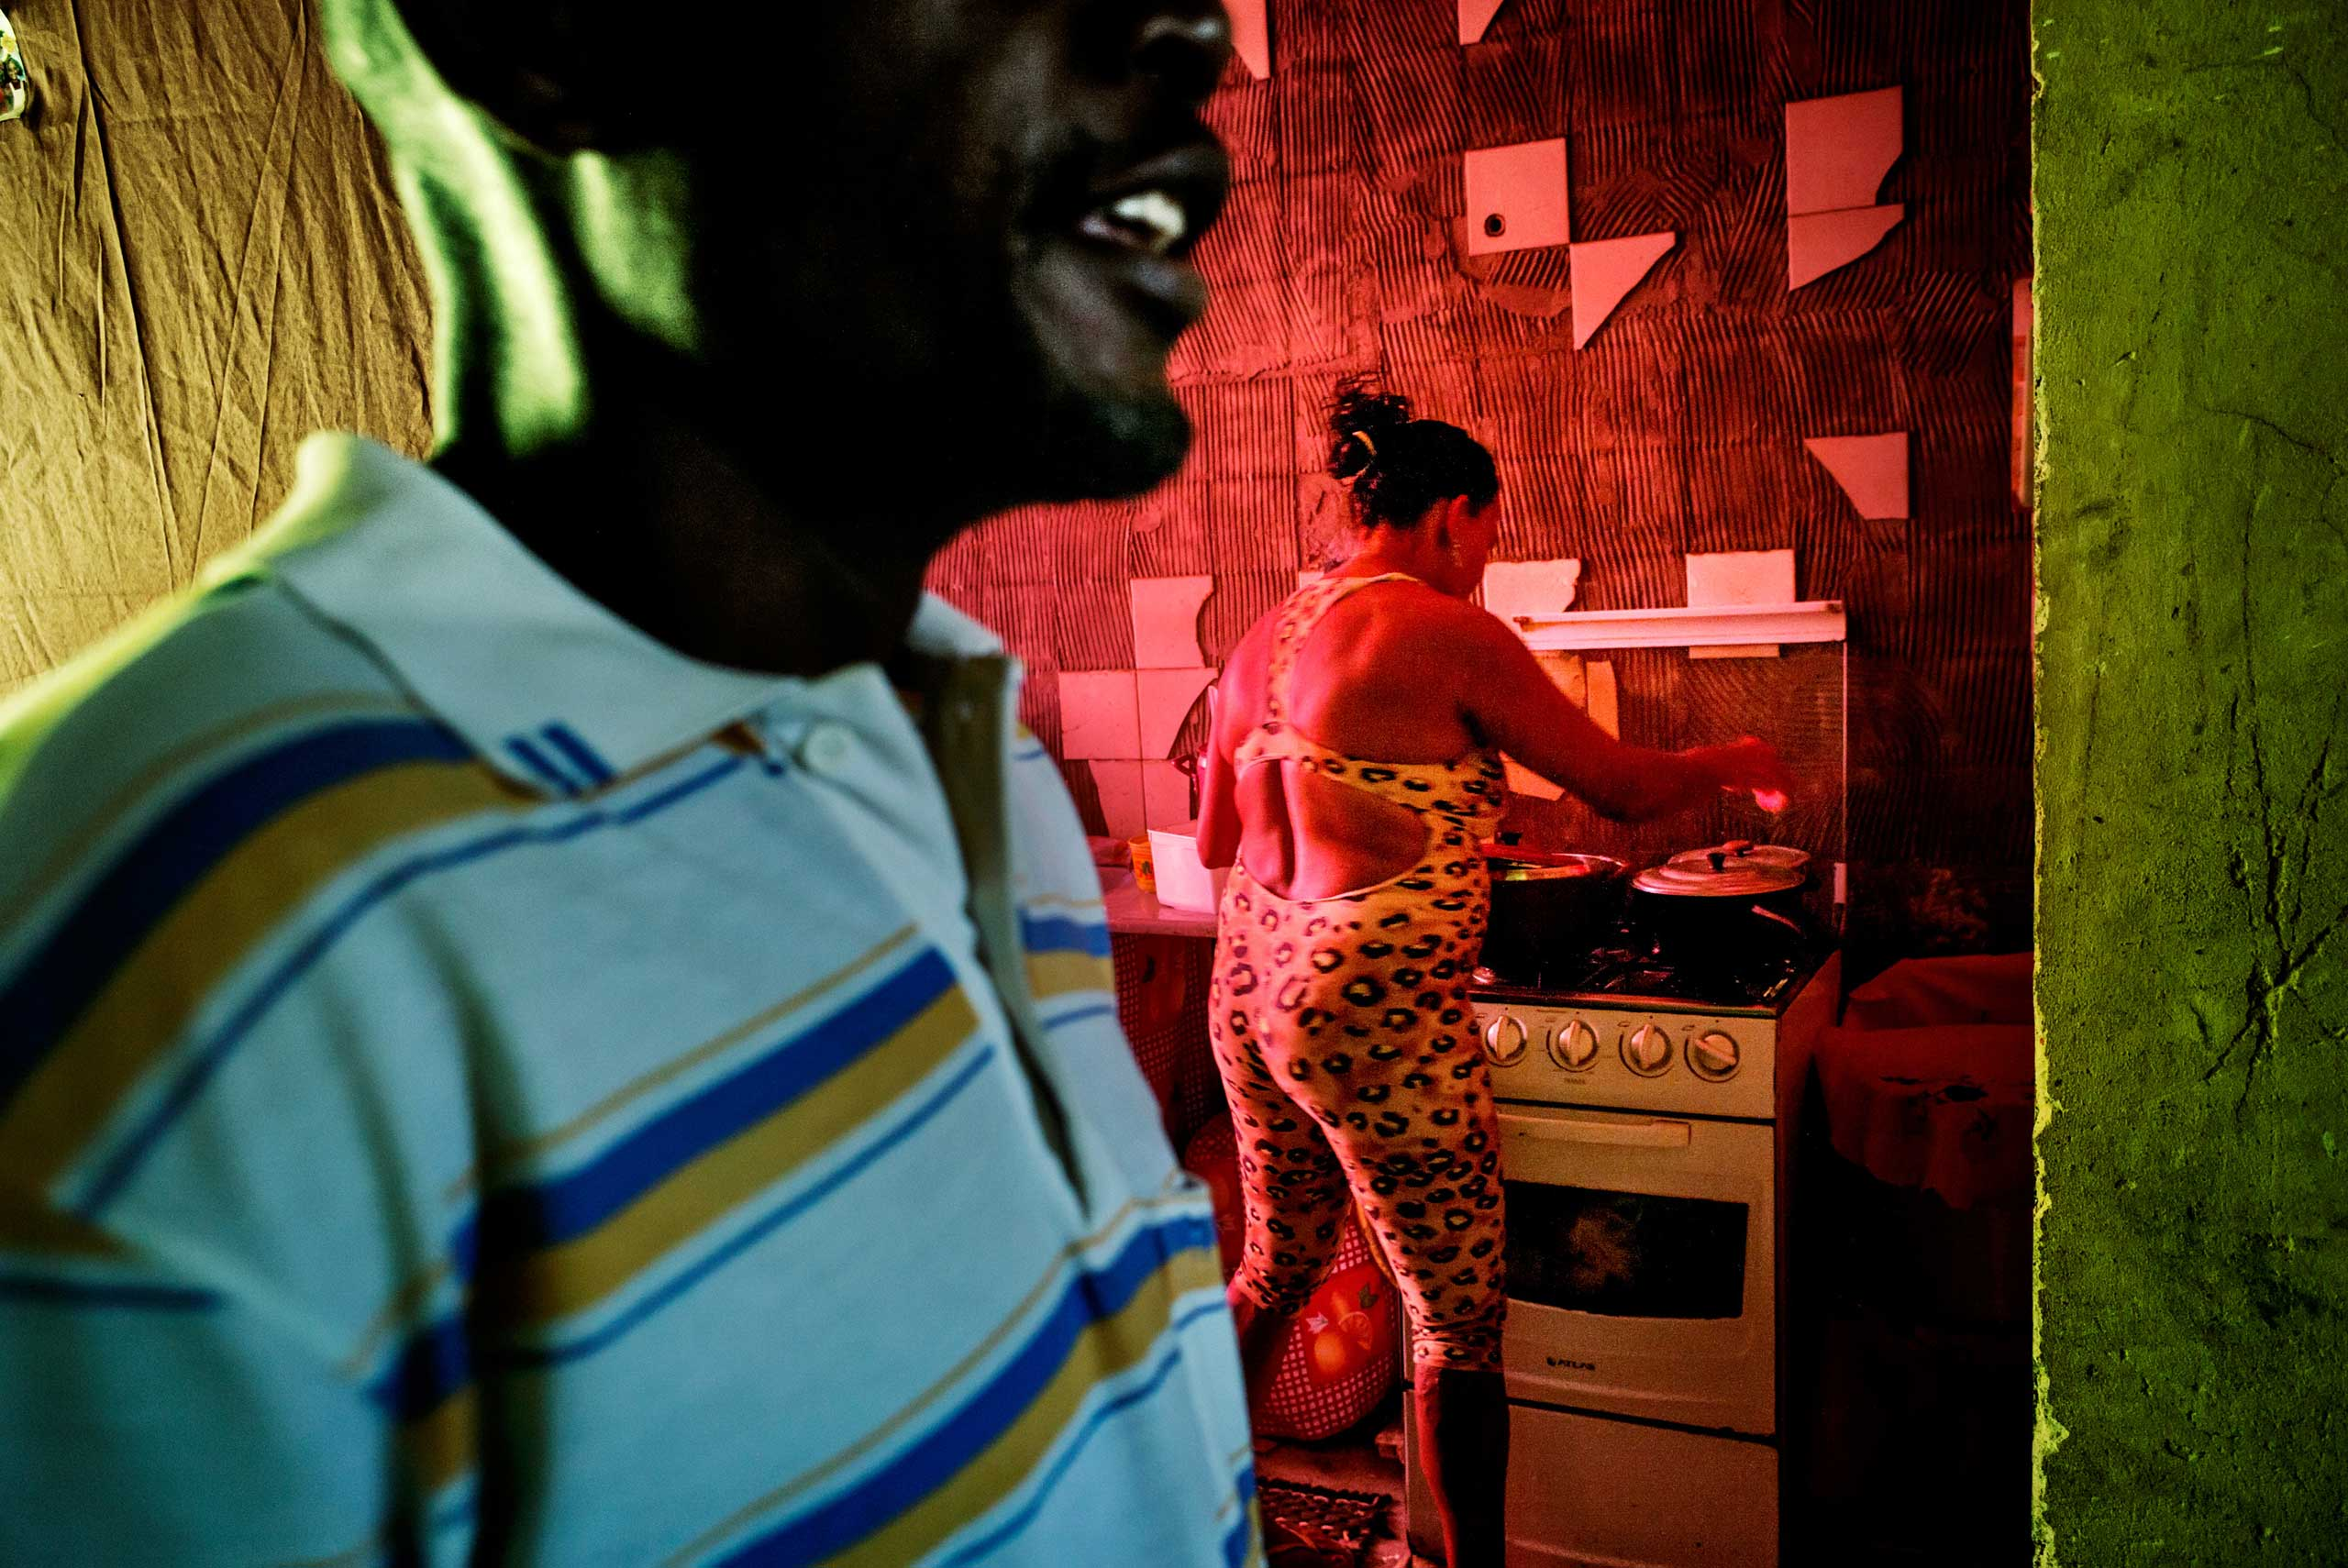 Domingo, from Angola, came several years ago to Brazil in search for a better life.